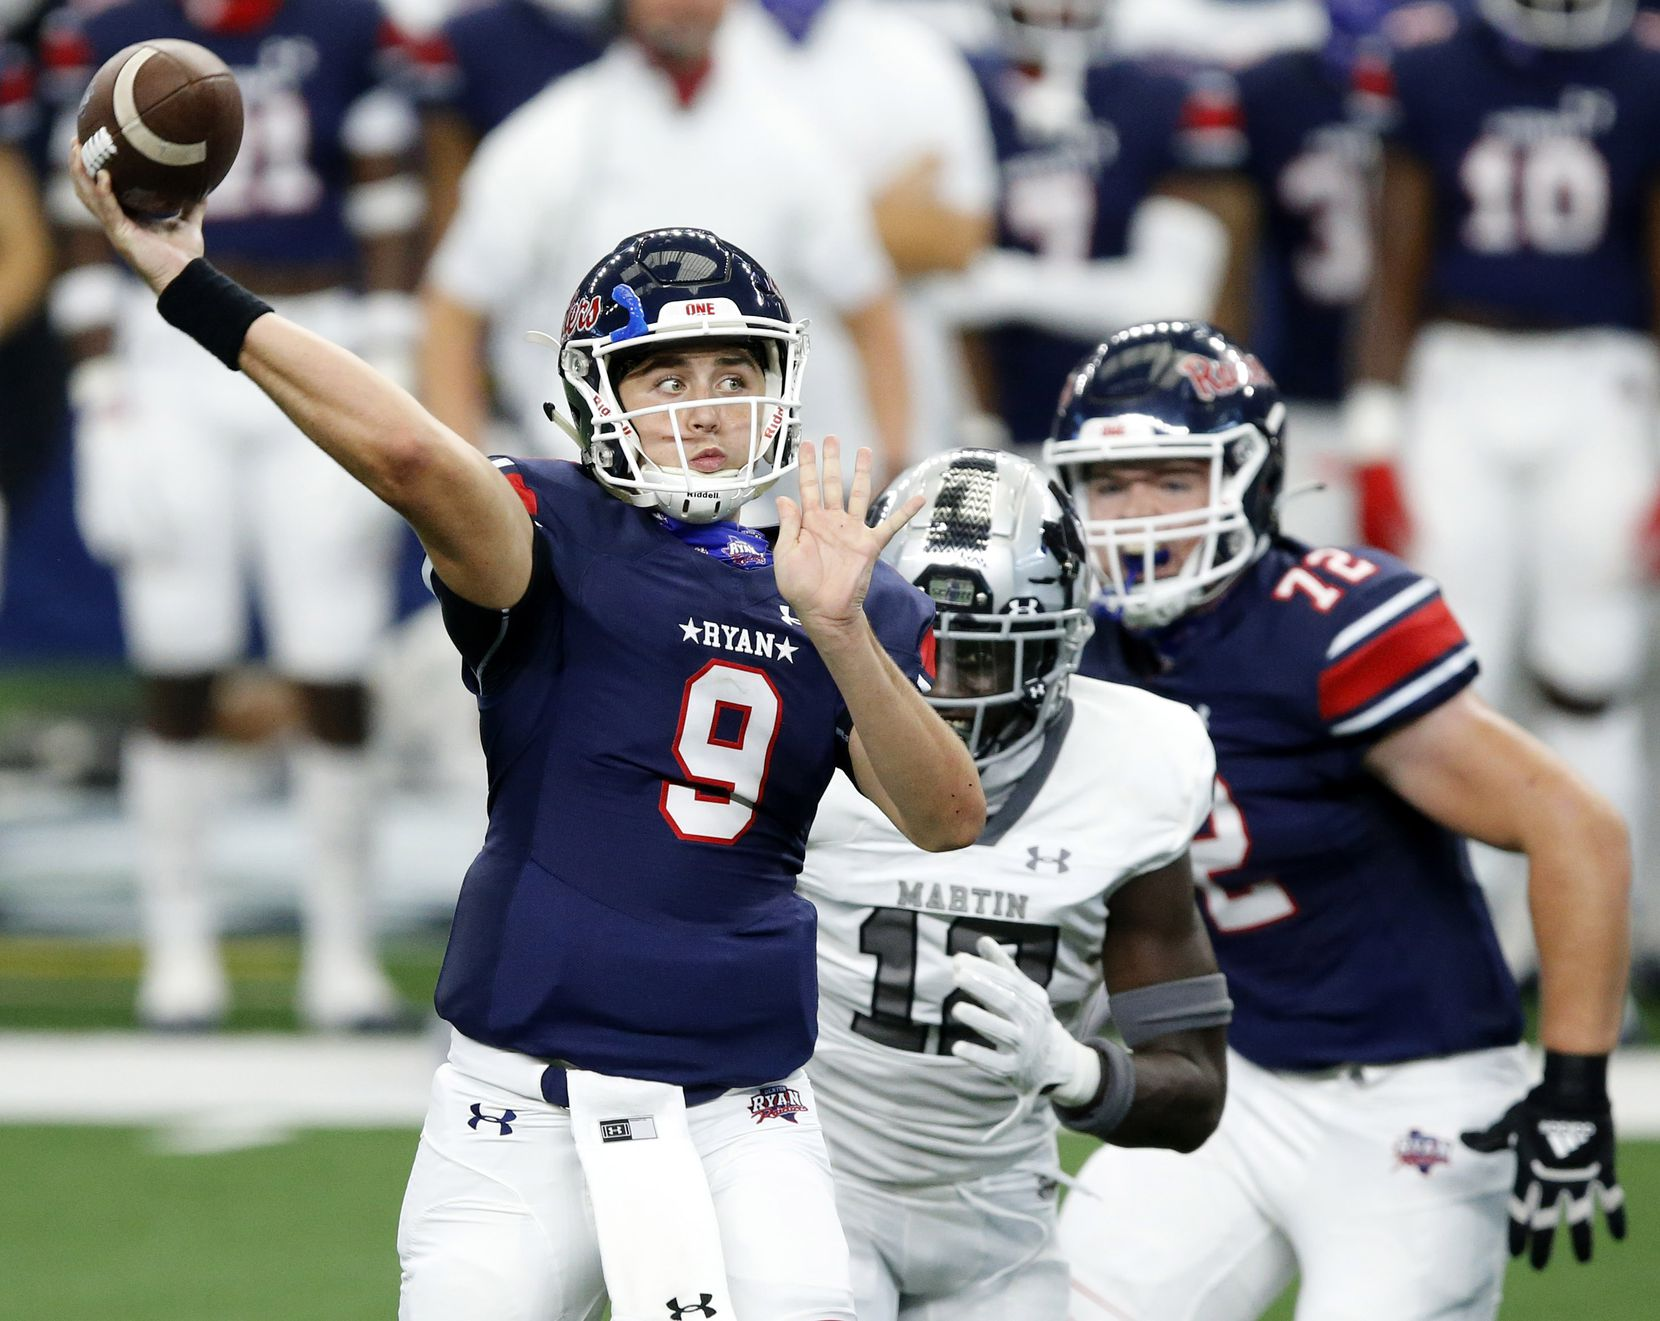 Denton Ryan quarterback Austin Jordan (9) tosses a first quarter touchdown pass against Arlington Martin at AT&T Stadium in Arlington, Friday, September 25, 2020. Wide receiver Billy Bowman Jr caught the pass in the end zone. (Tom Fox/The Dallas Morning News)